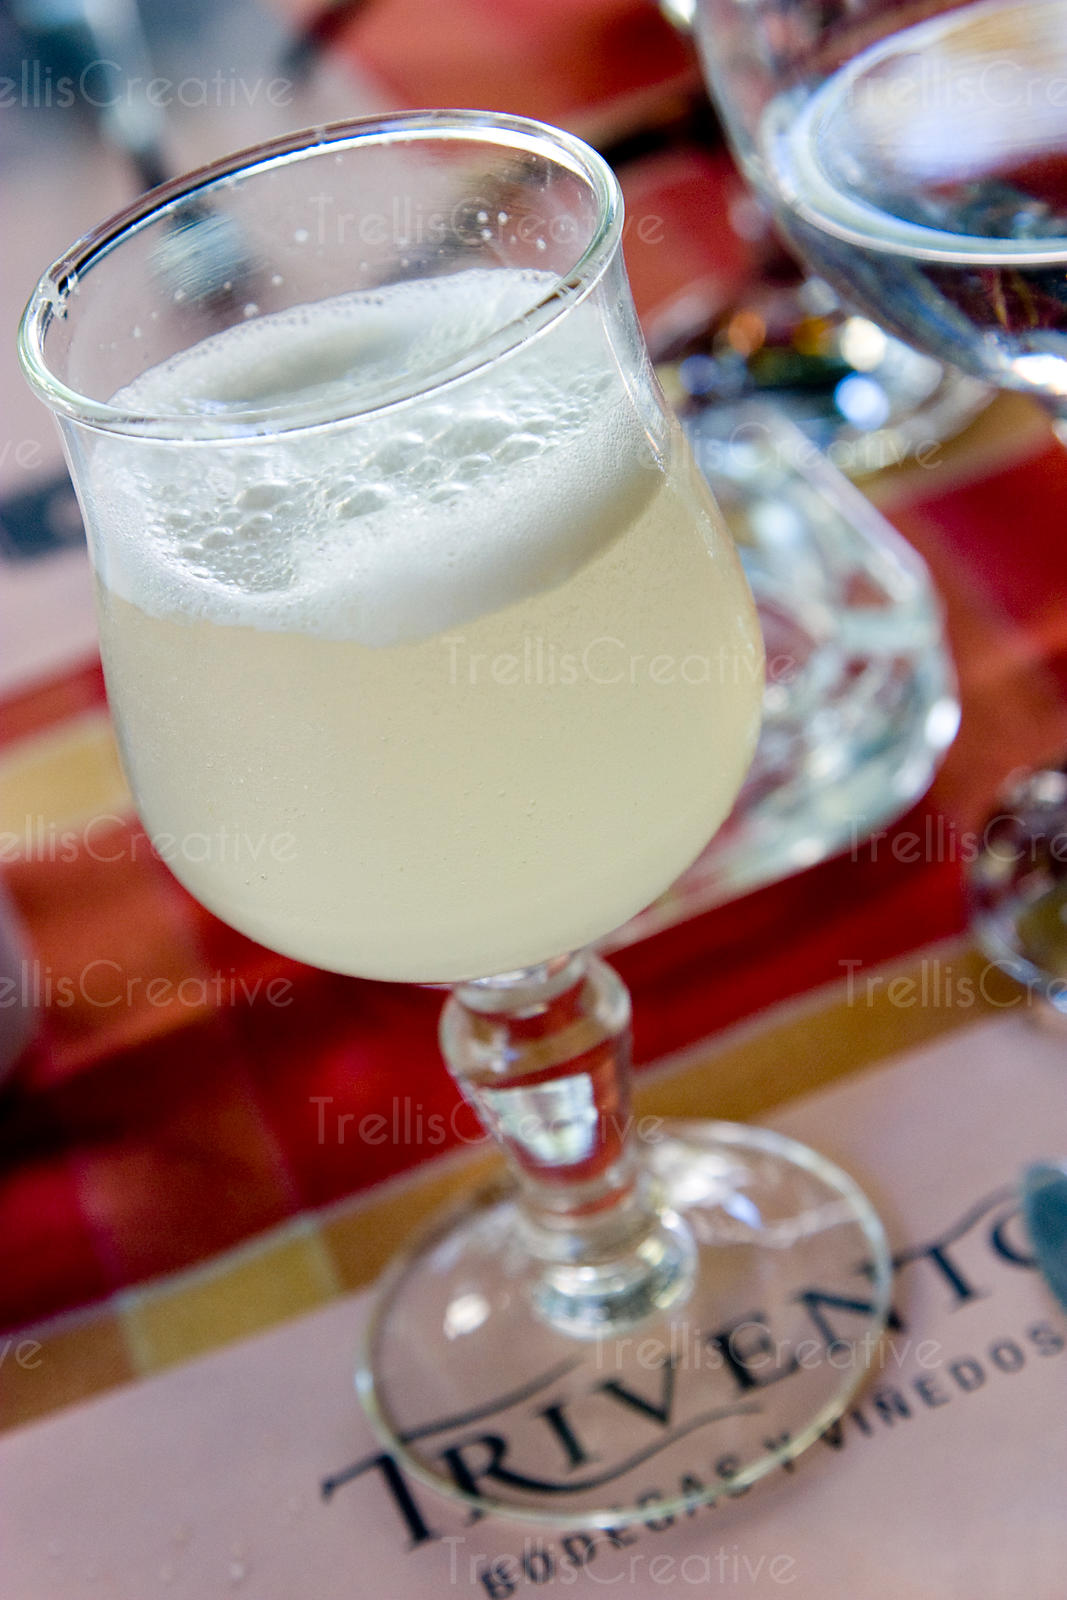 Pisco sour with a foamy head